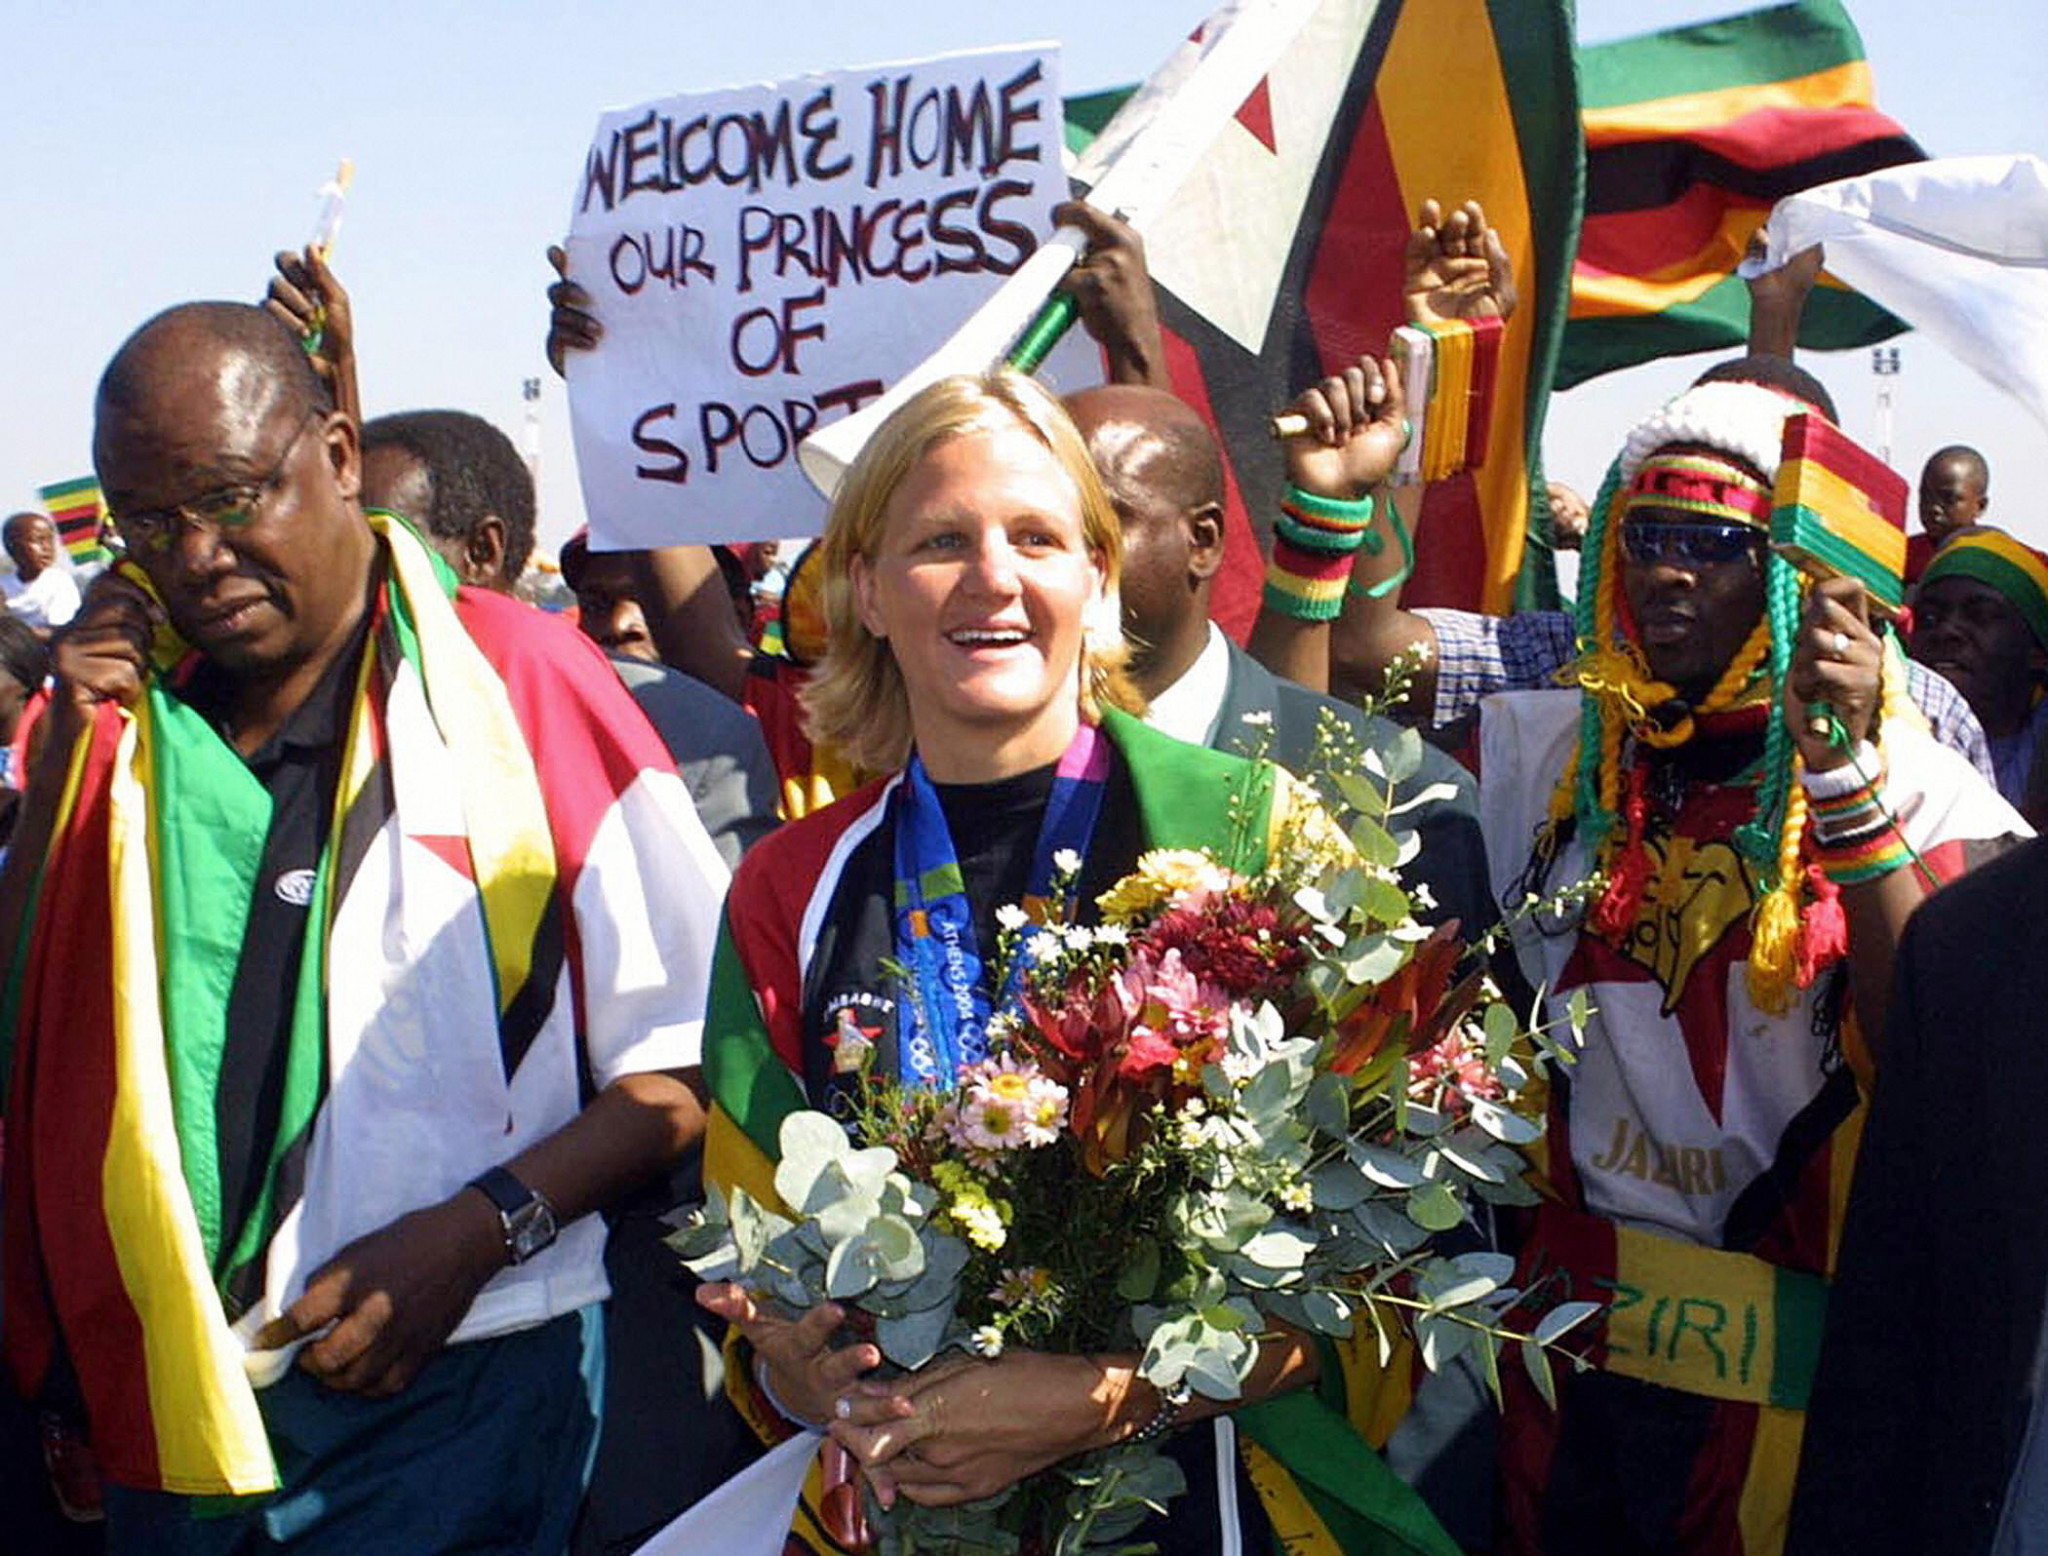 The hockey team's Olympic medal is Zimbabwe's only one not won by Kirsty Coventry ©Getty Images